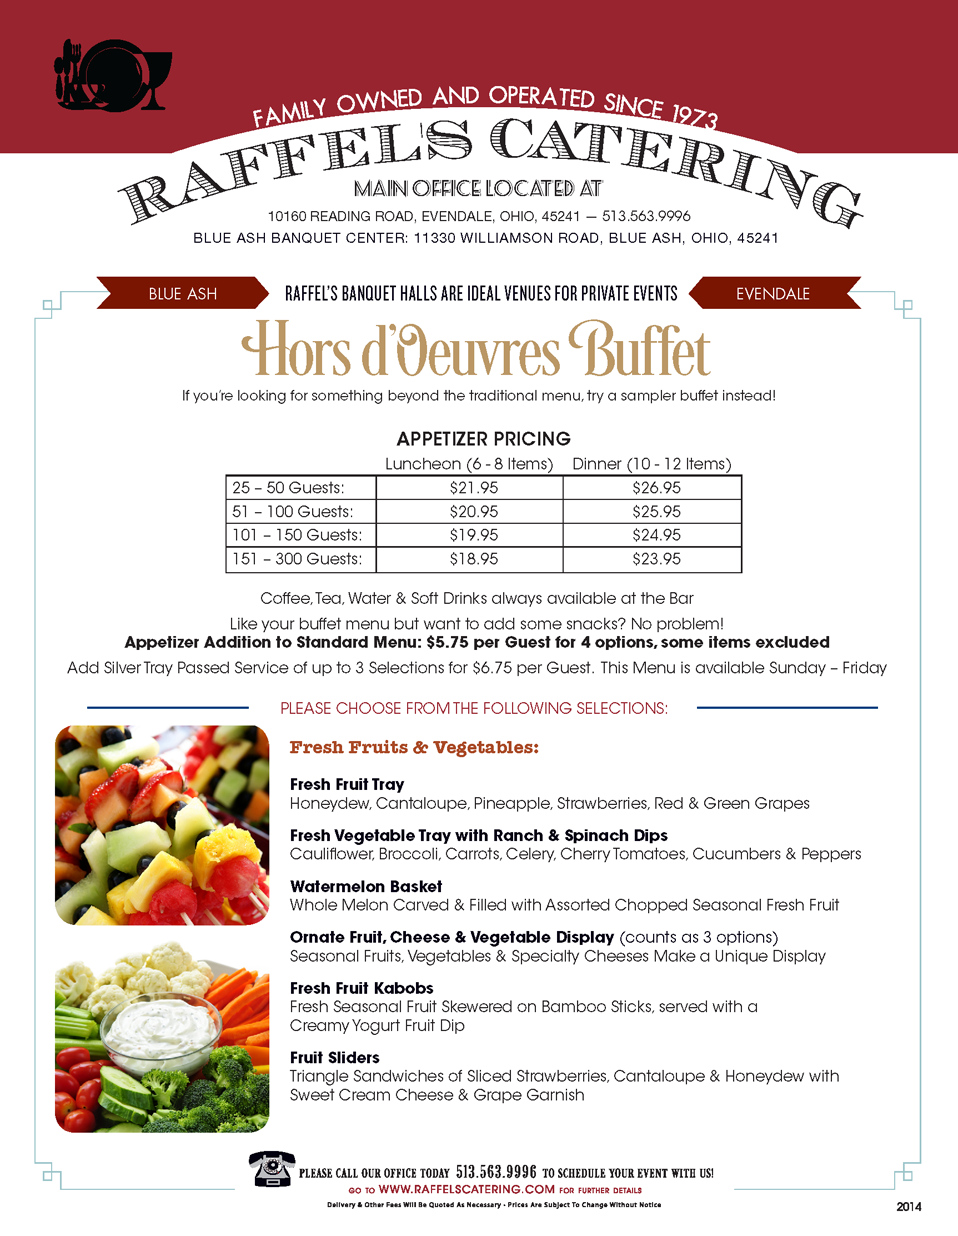 banquet hall, hors d'oeuvres package